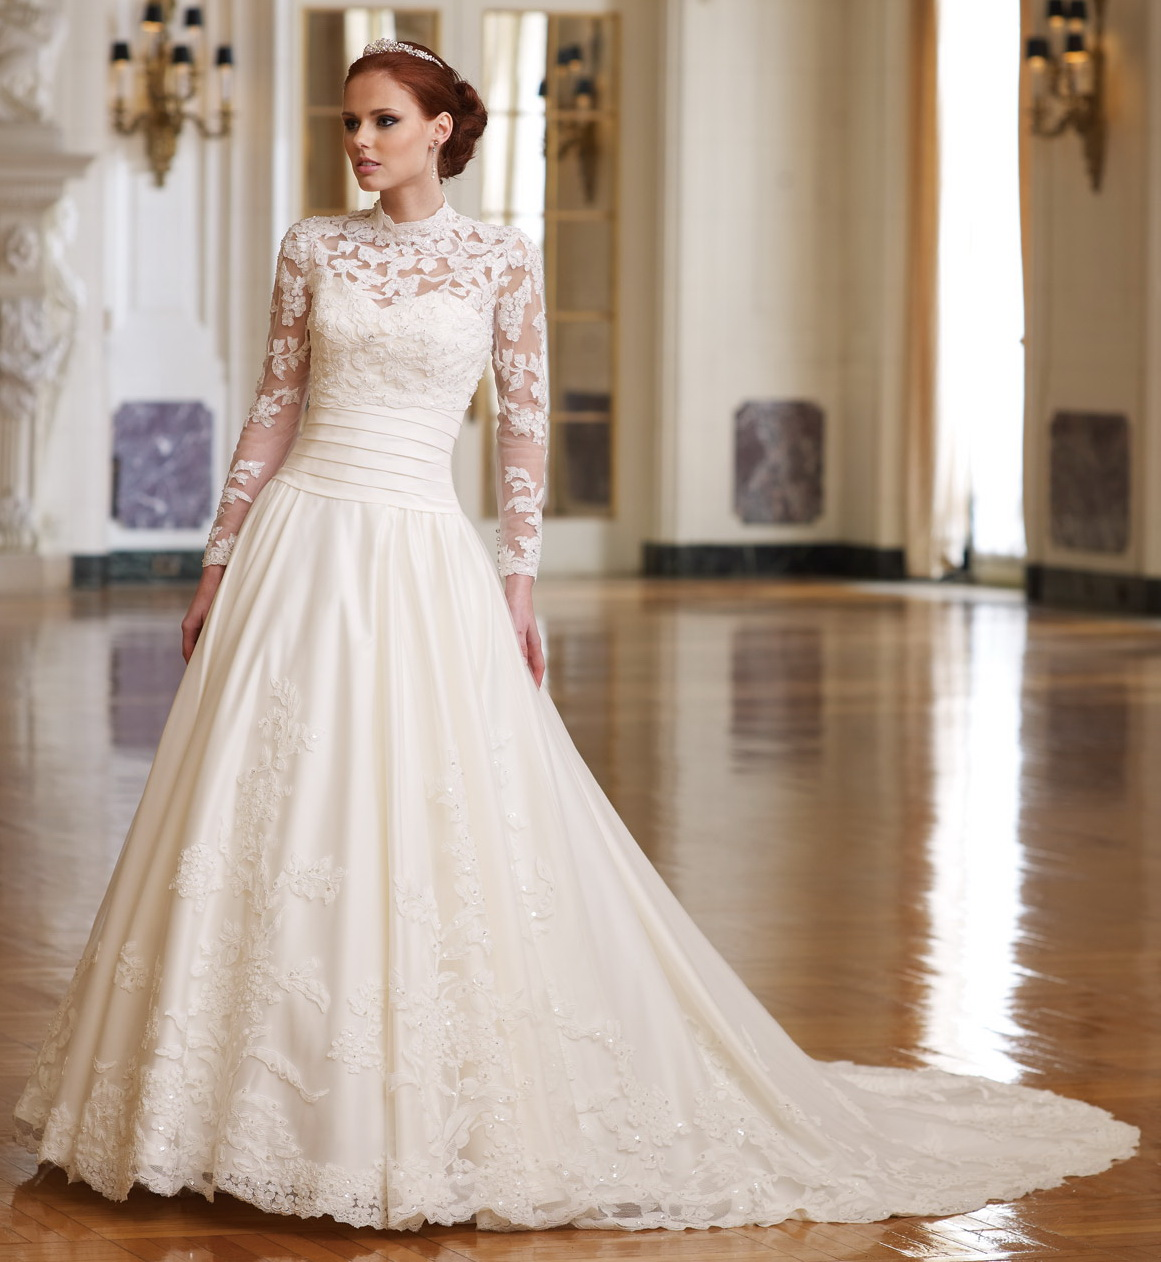 Lace wedding dress for Lace dresses for weddings